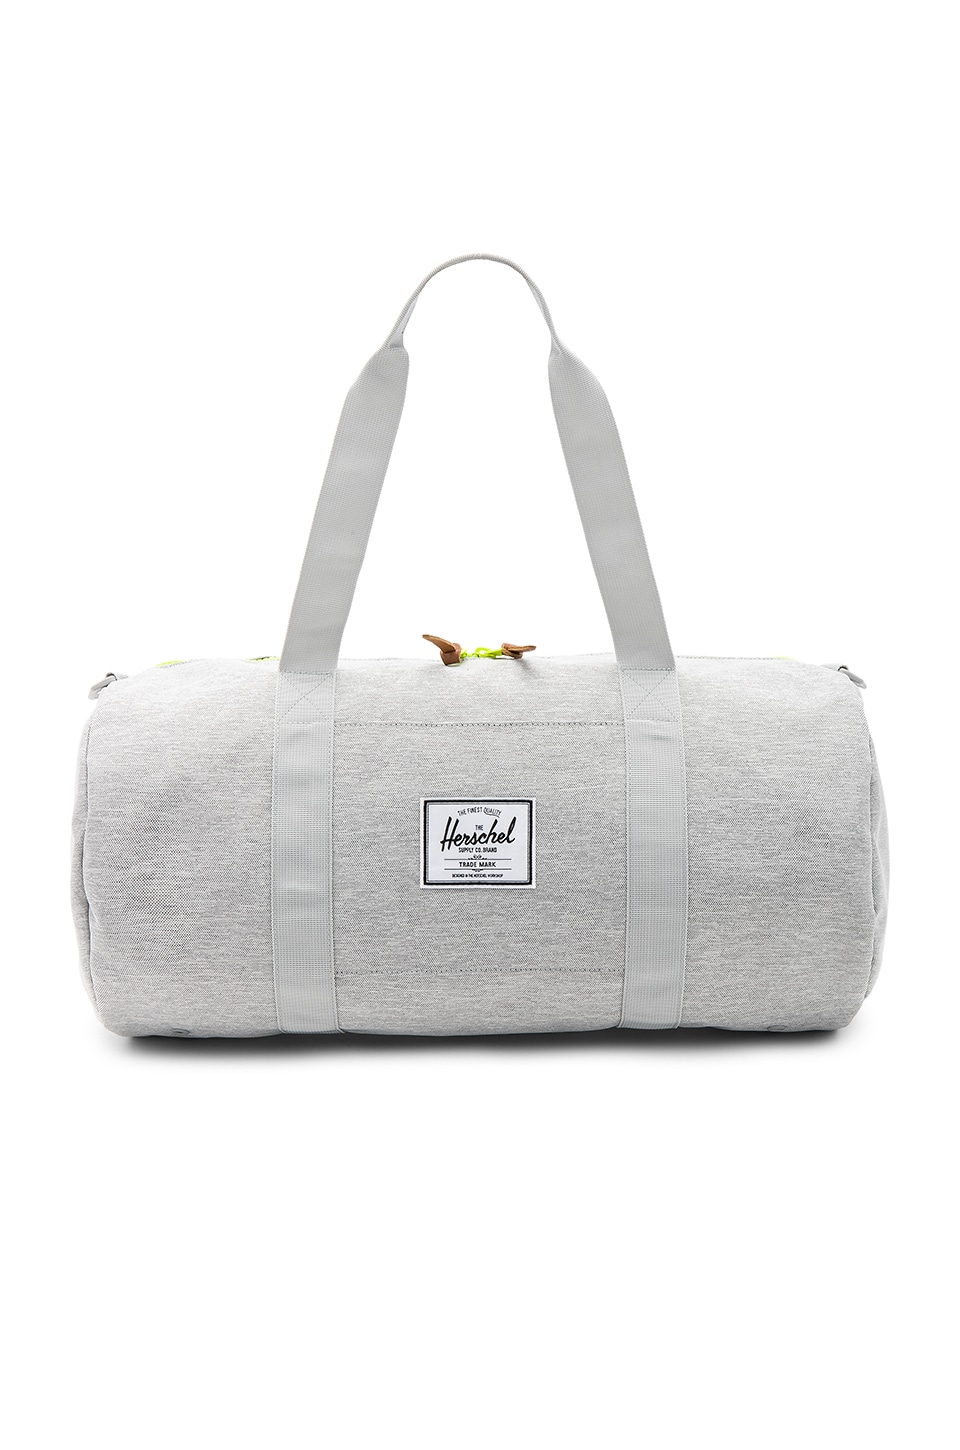 Herschel Supply Co. Sutton Duffel in Light Grey Crosshatch